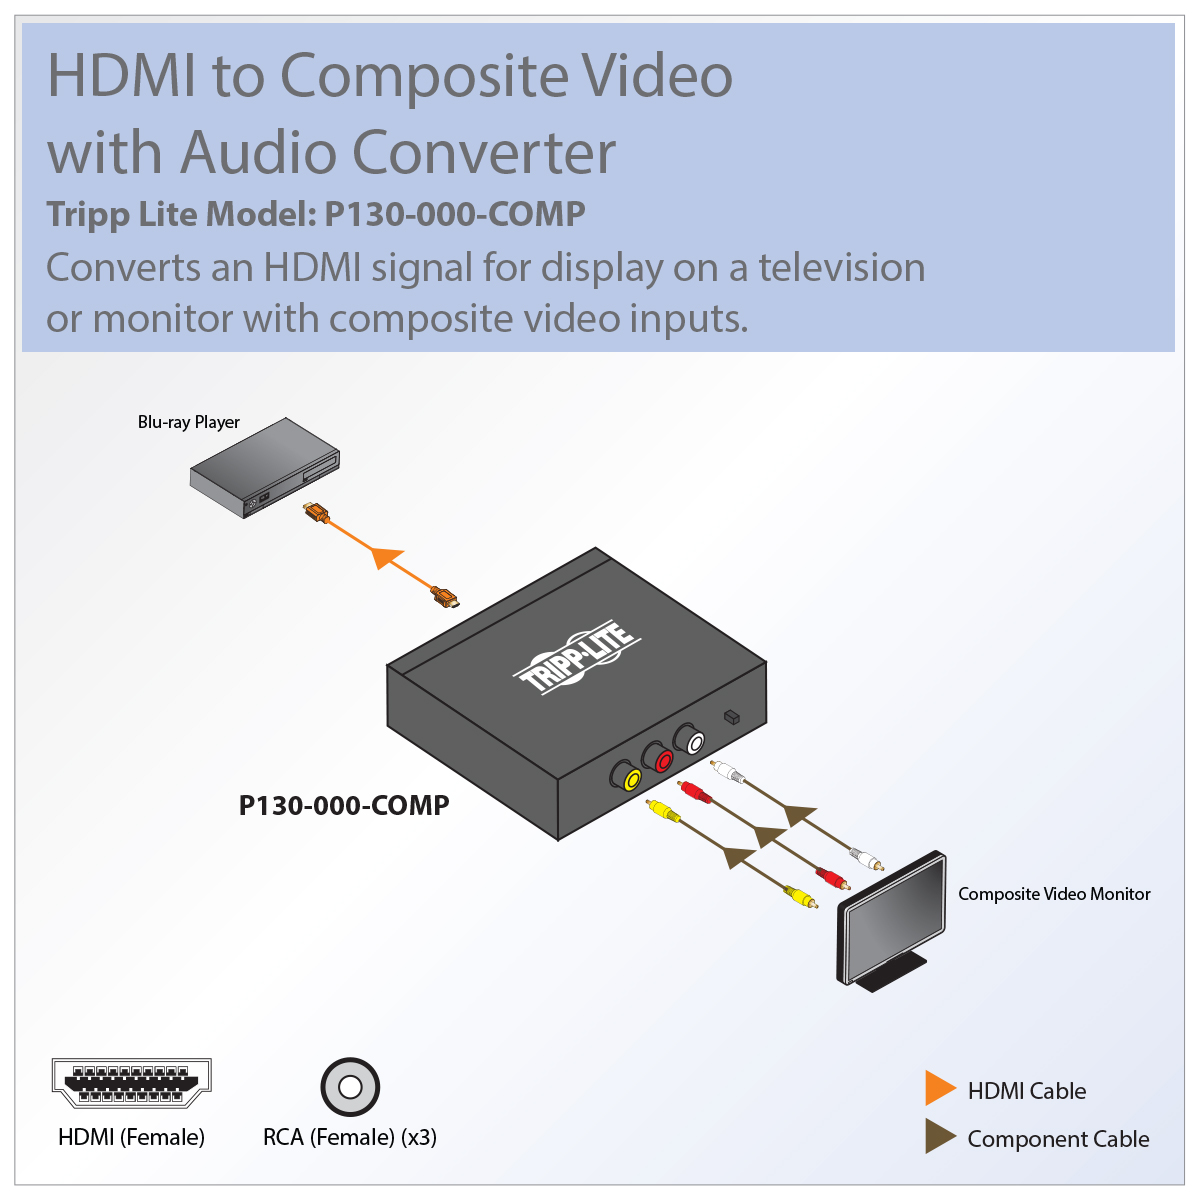 convert hdmi to composite video and audio for compatibility with analog  displays